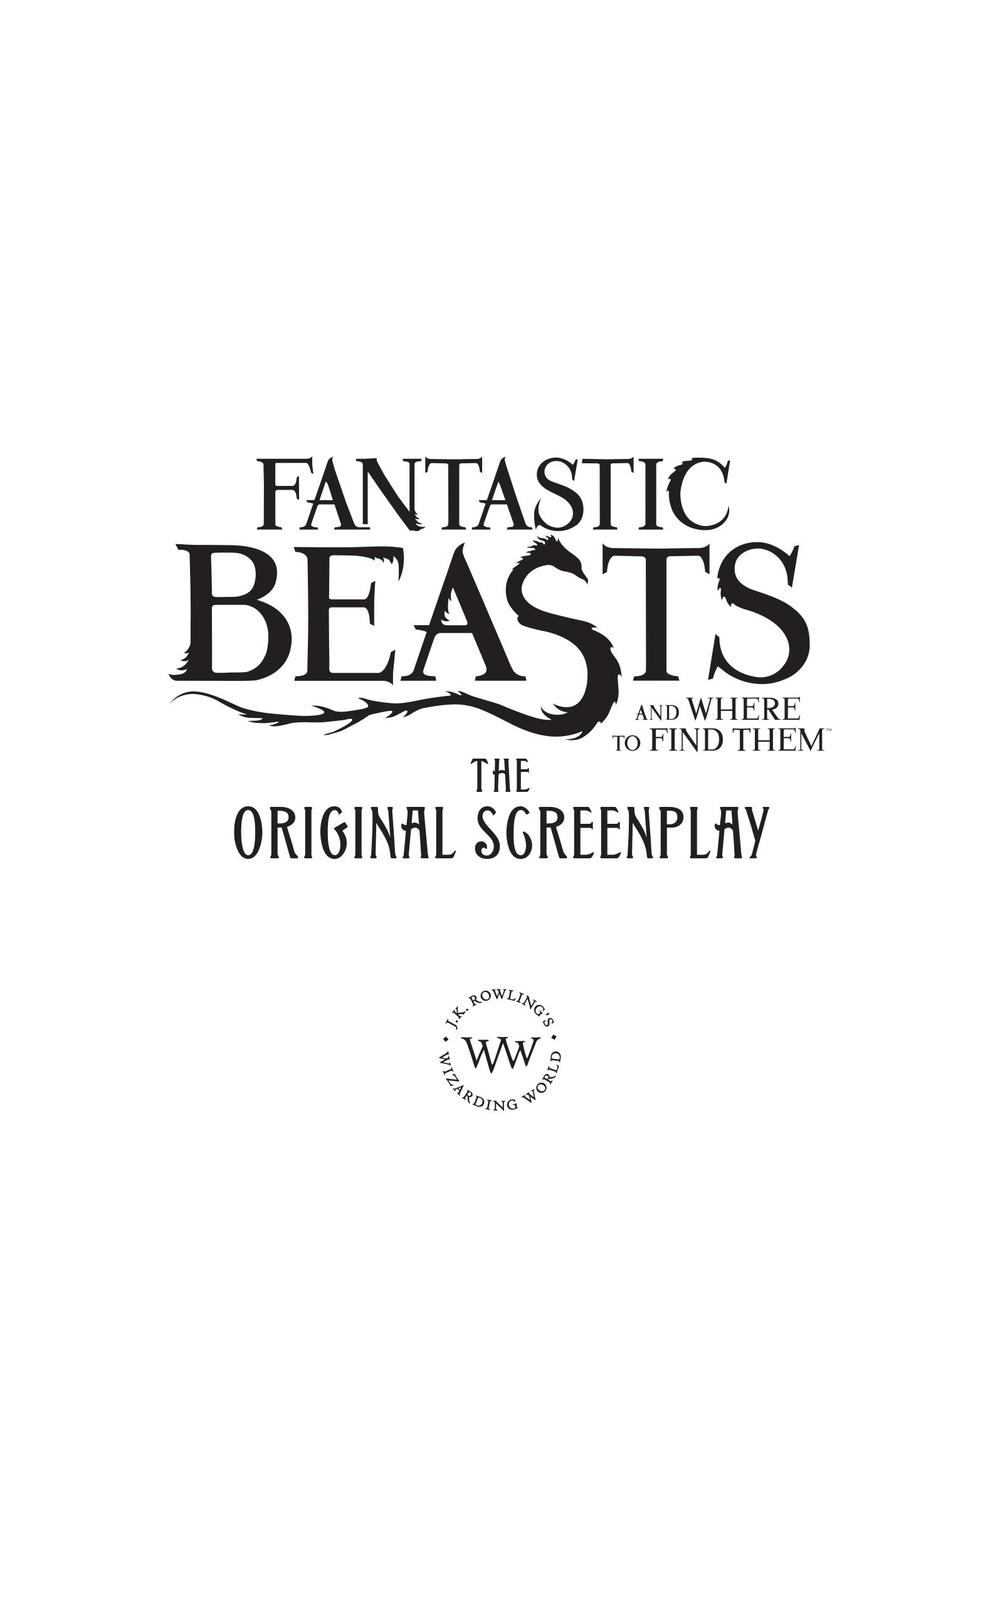 Fantastic Beasts and Where to Find Them Screenplay by J.K. Rowling image